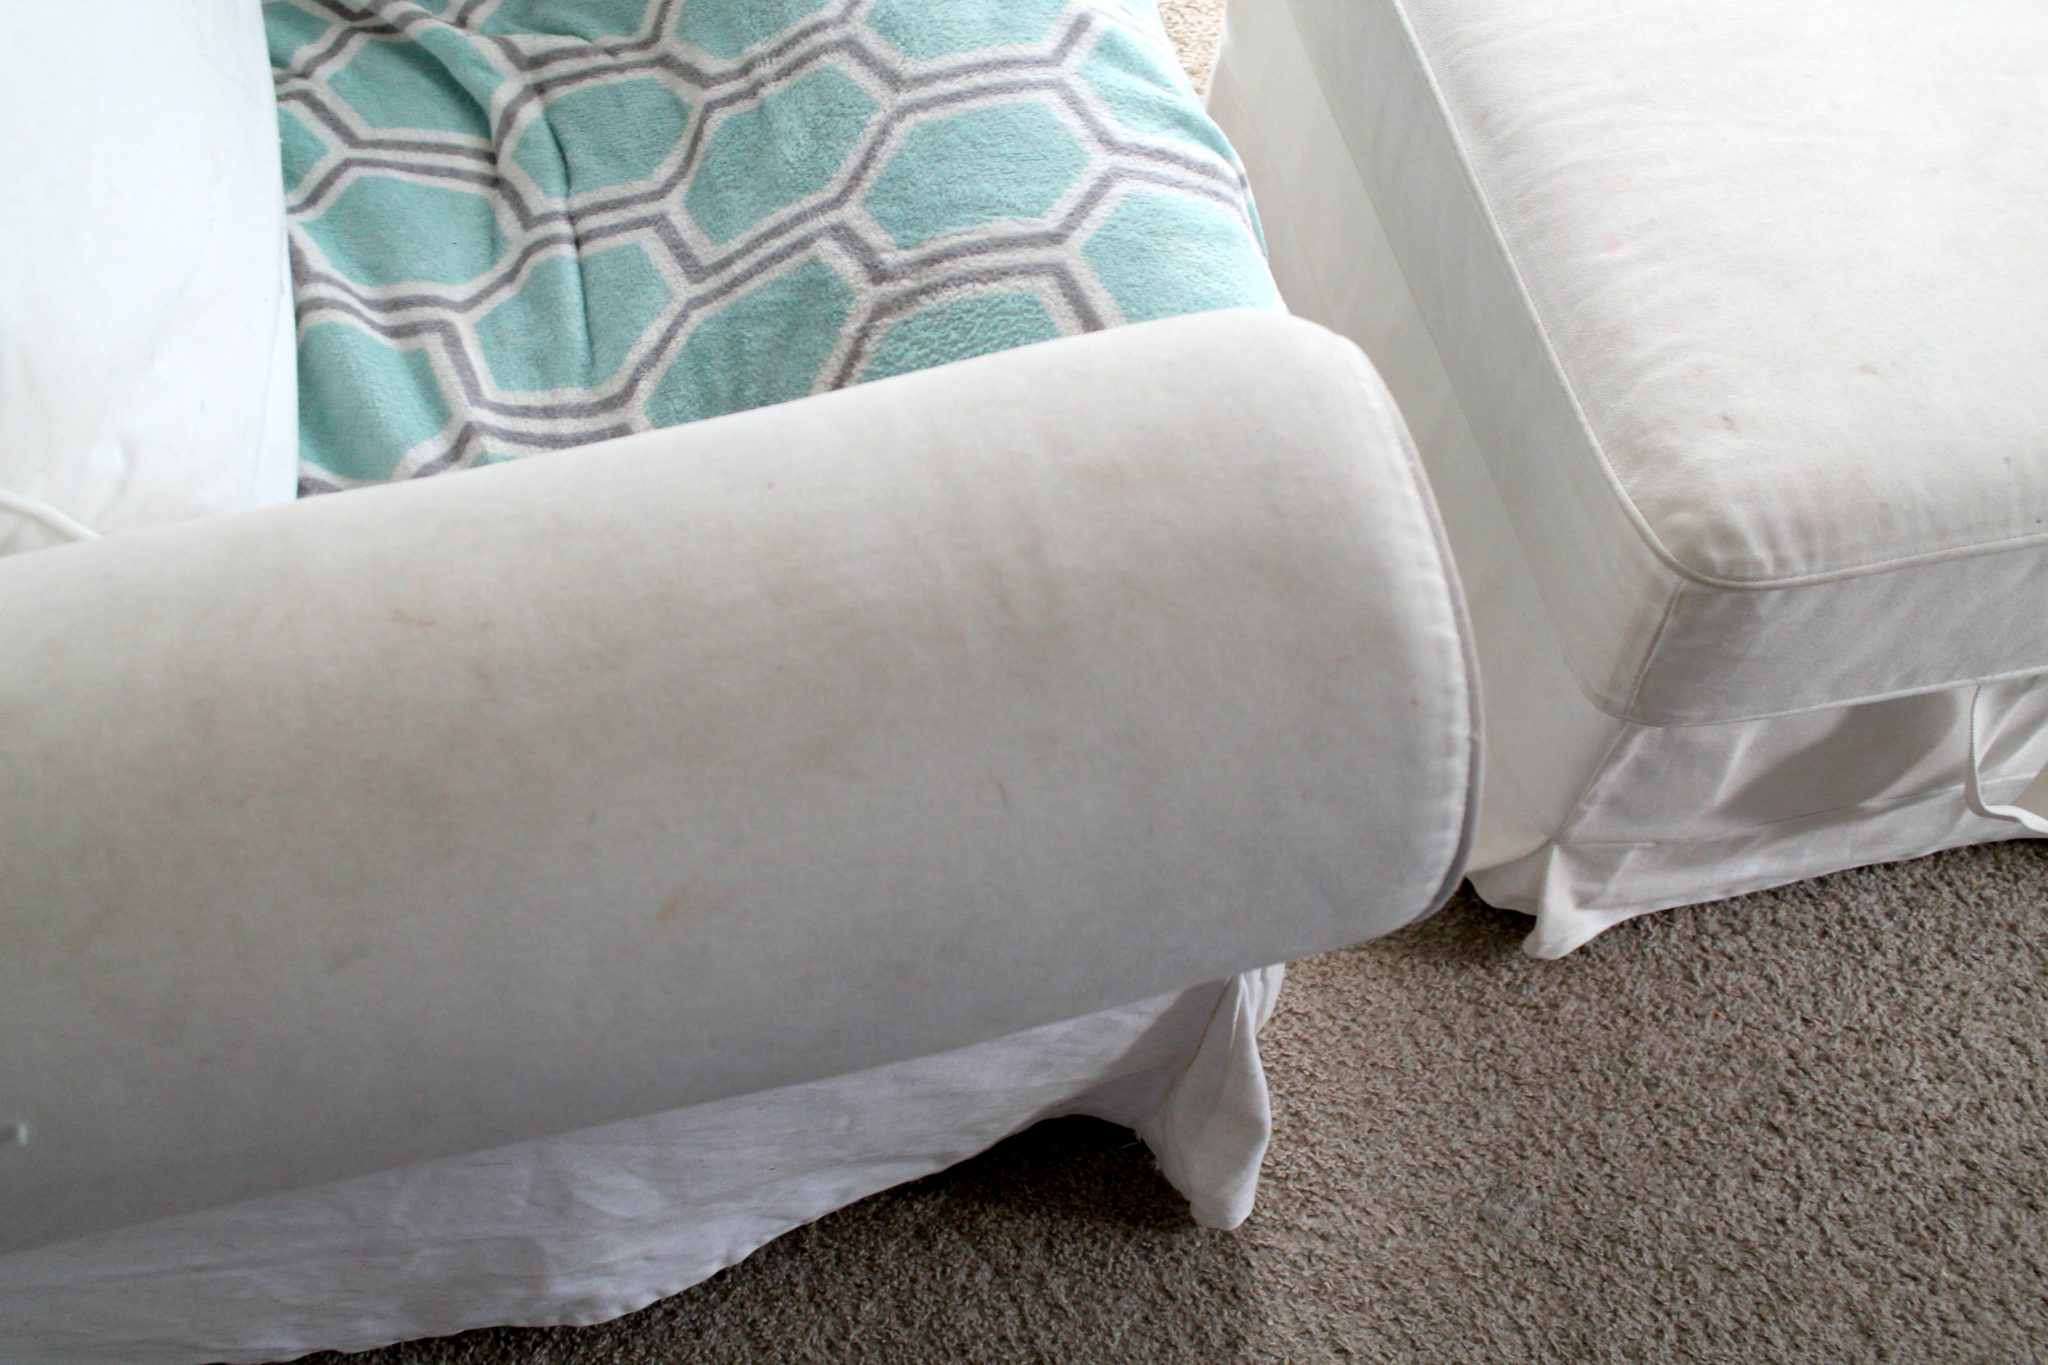 Tips for Keeping Your White Furniture Clean